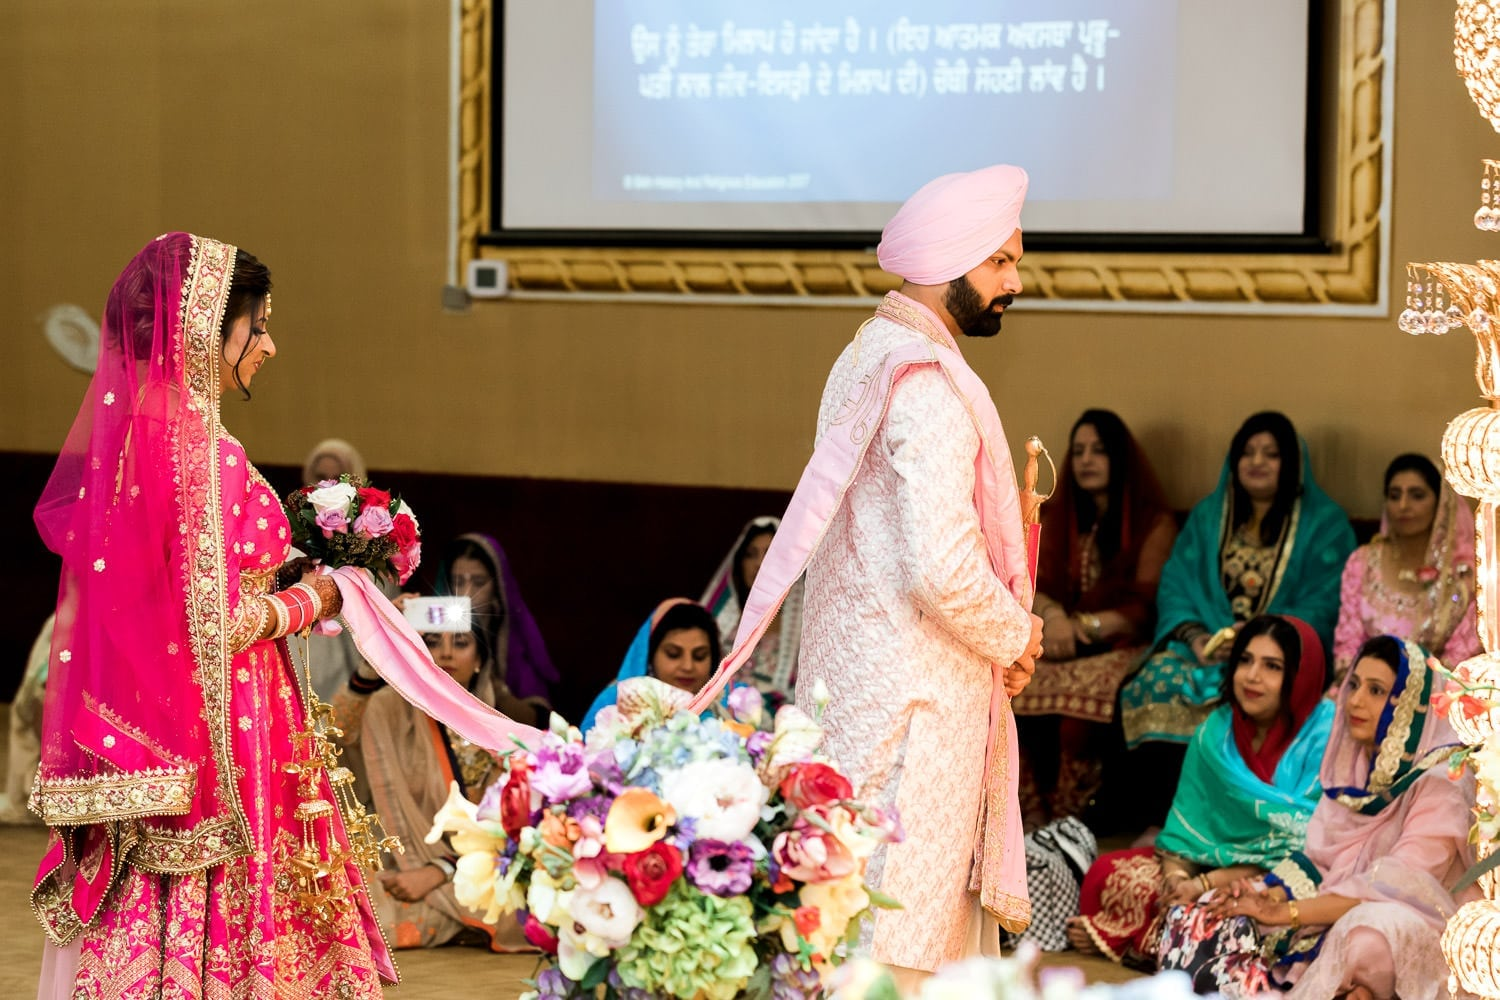 Indian wedding ceremony at the temple | Indian wedding photography Vancouver